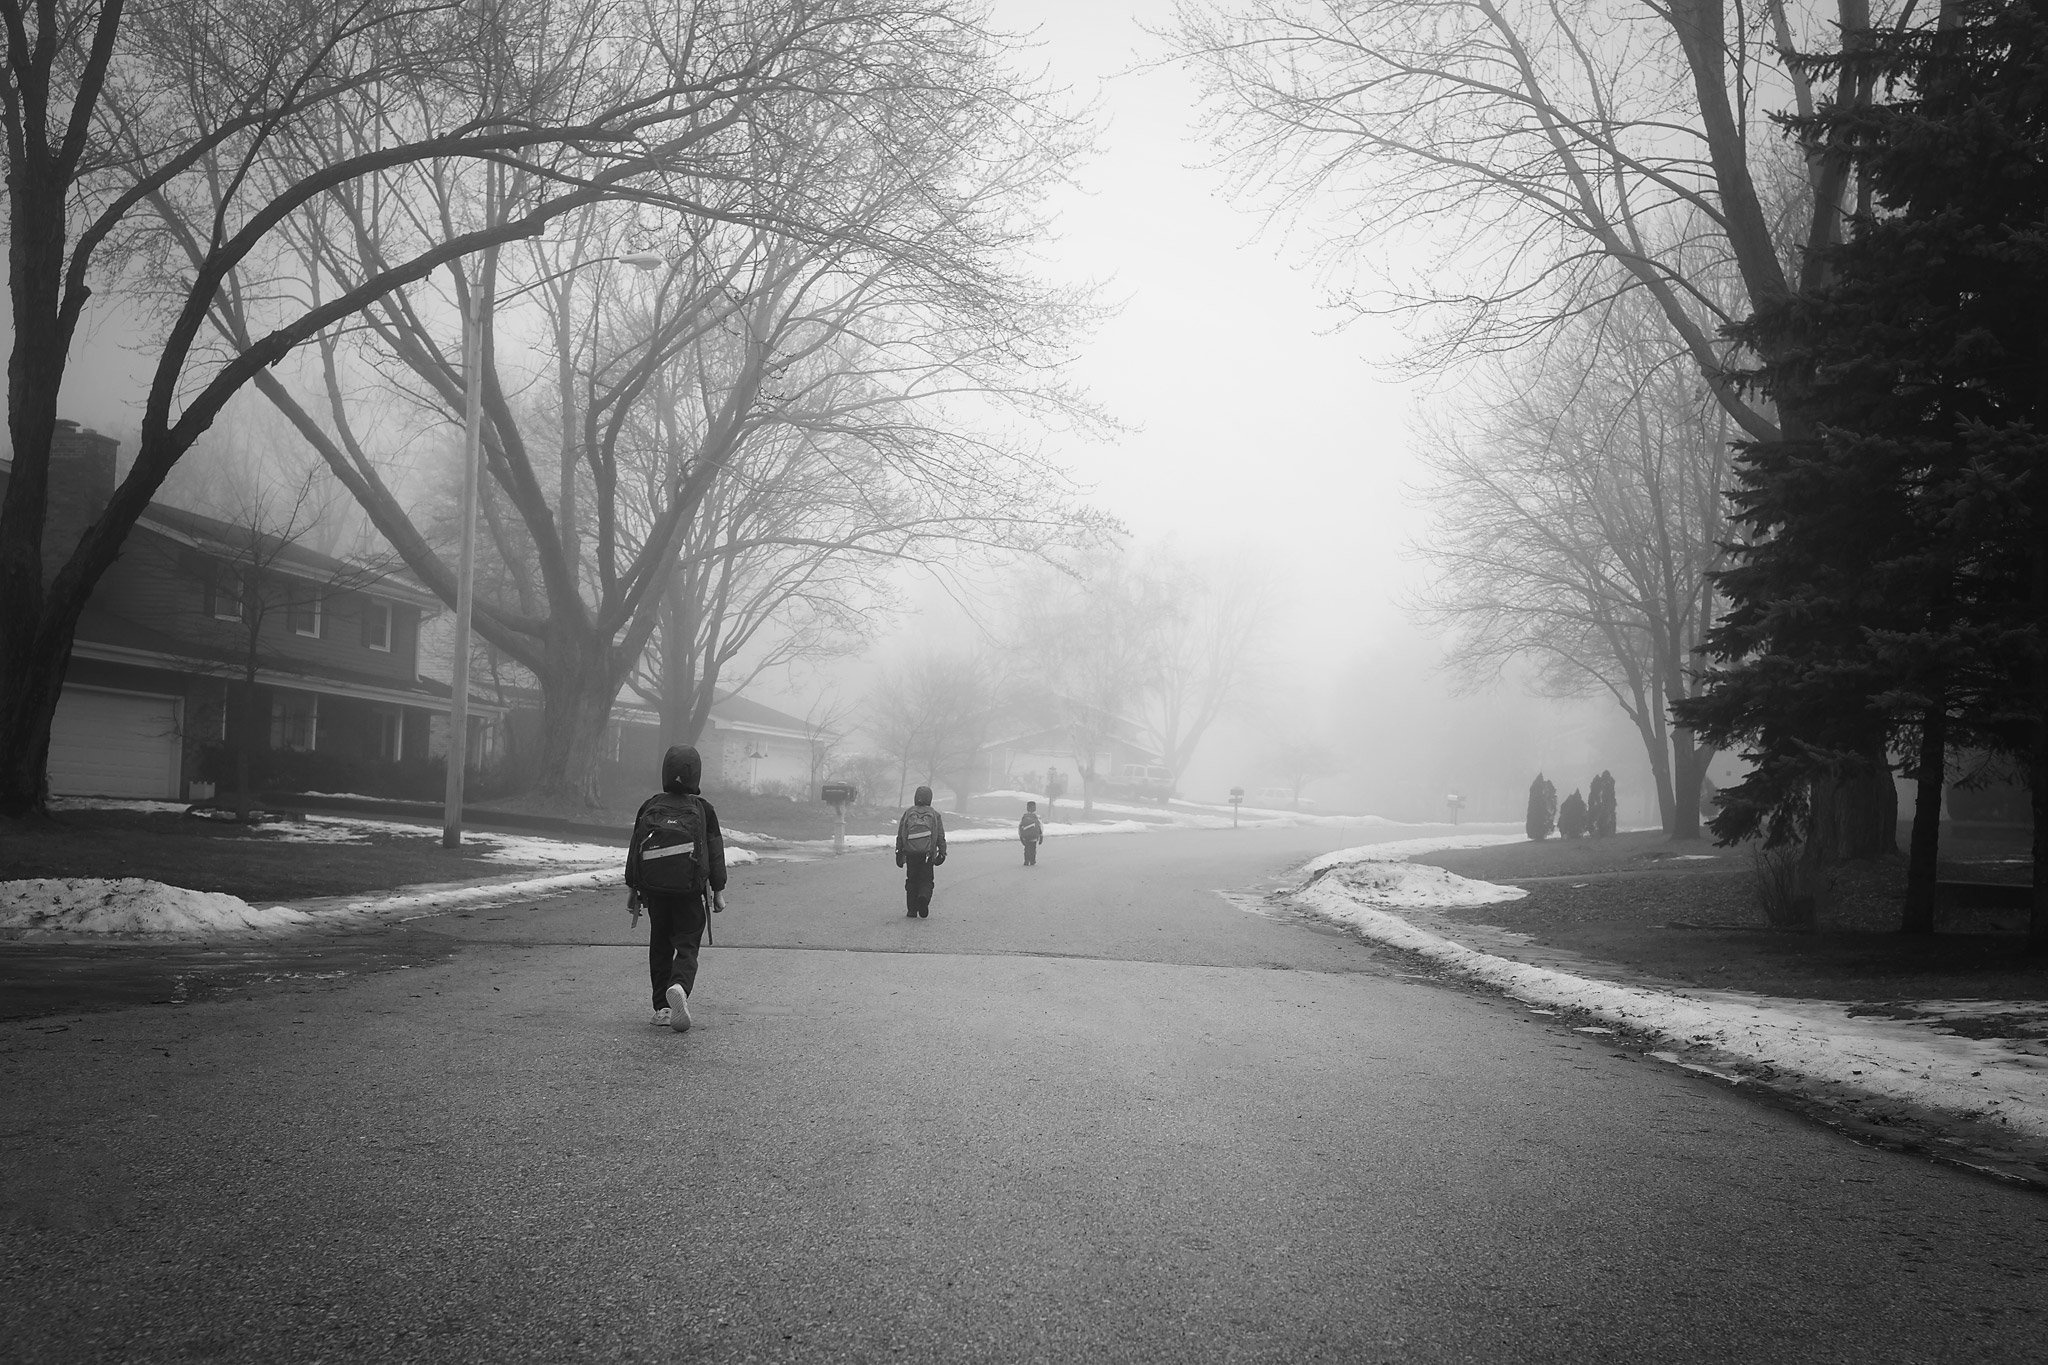 Three kids walking to the bus stop in foggy weather